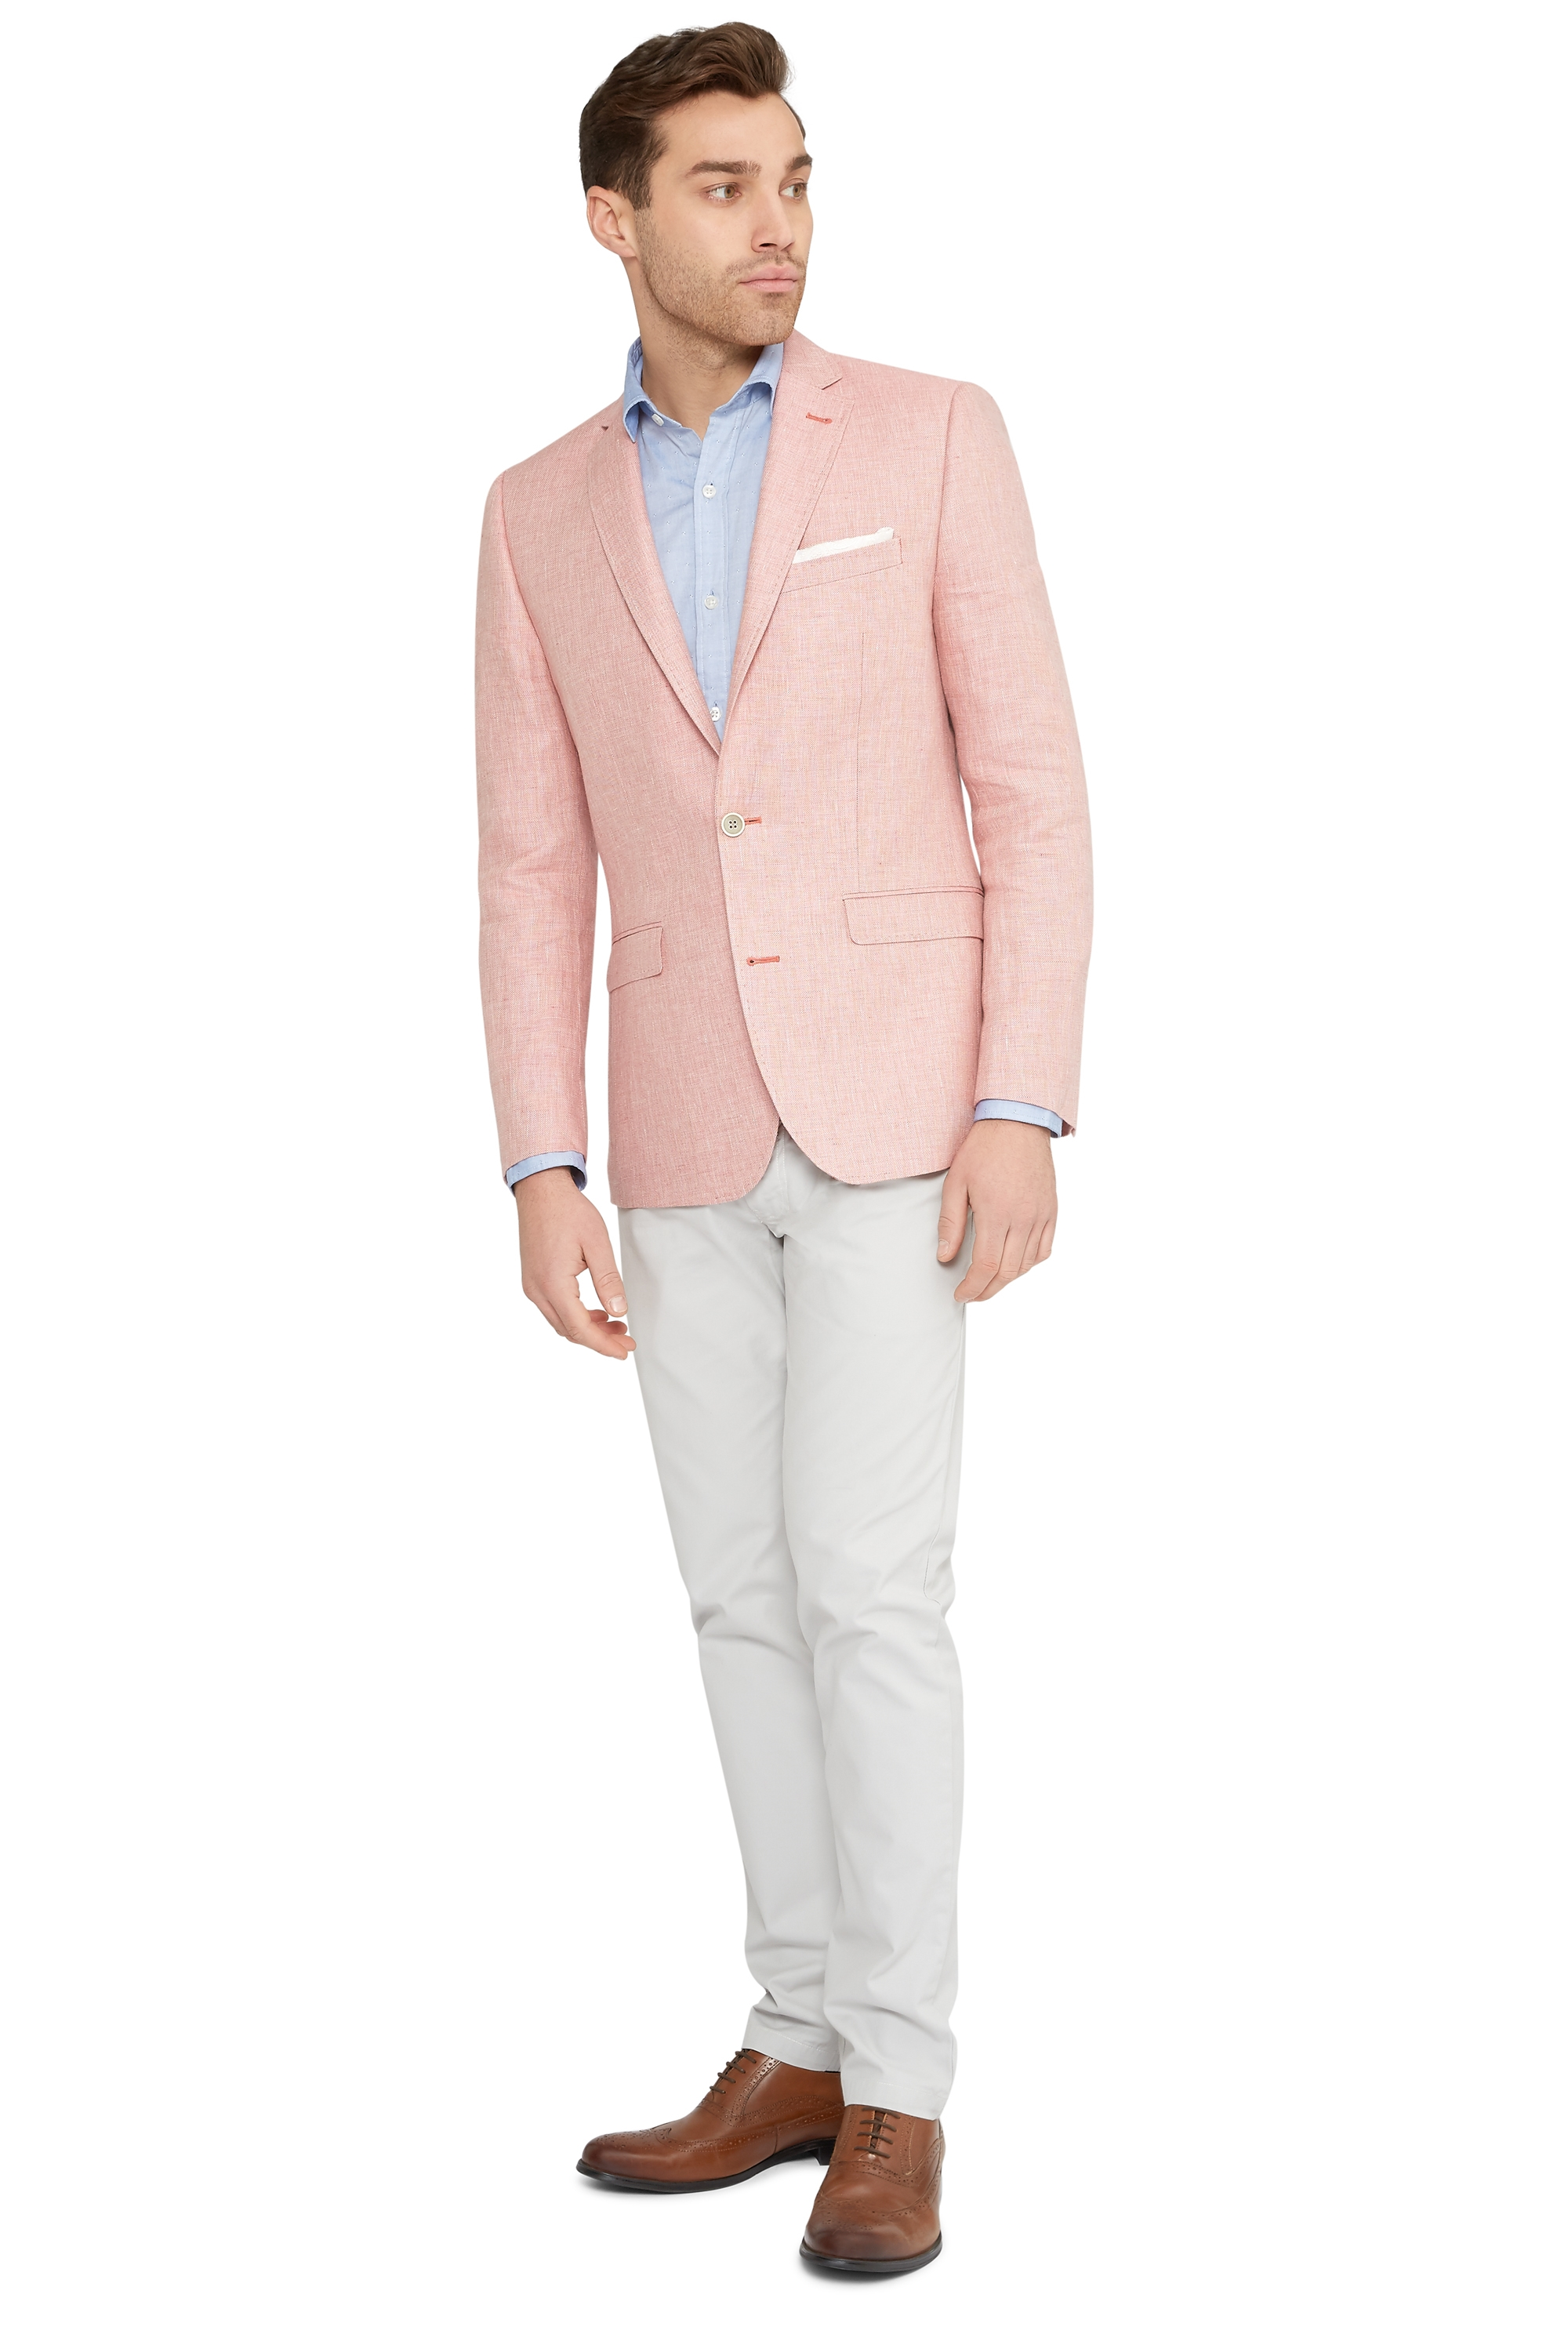 Moss 1851 Mens Tailored Fit Pink Linen Blazer Jacket Only | eBay